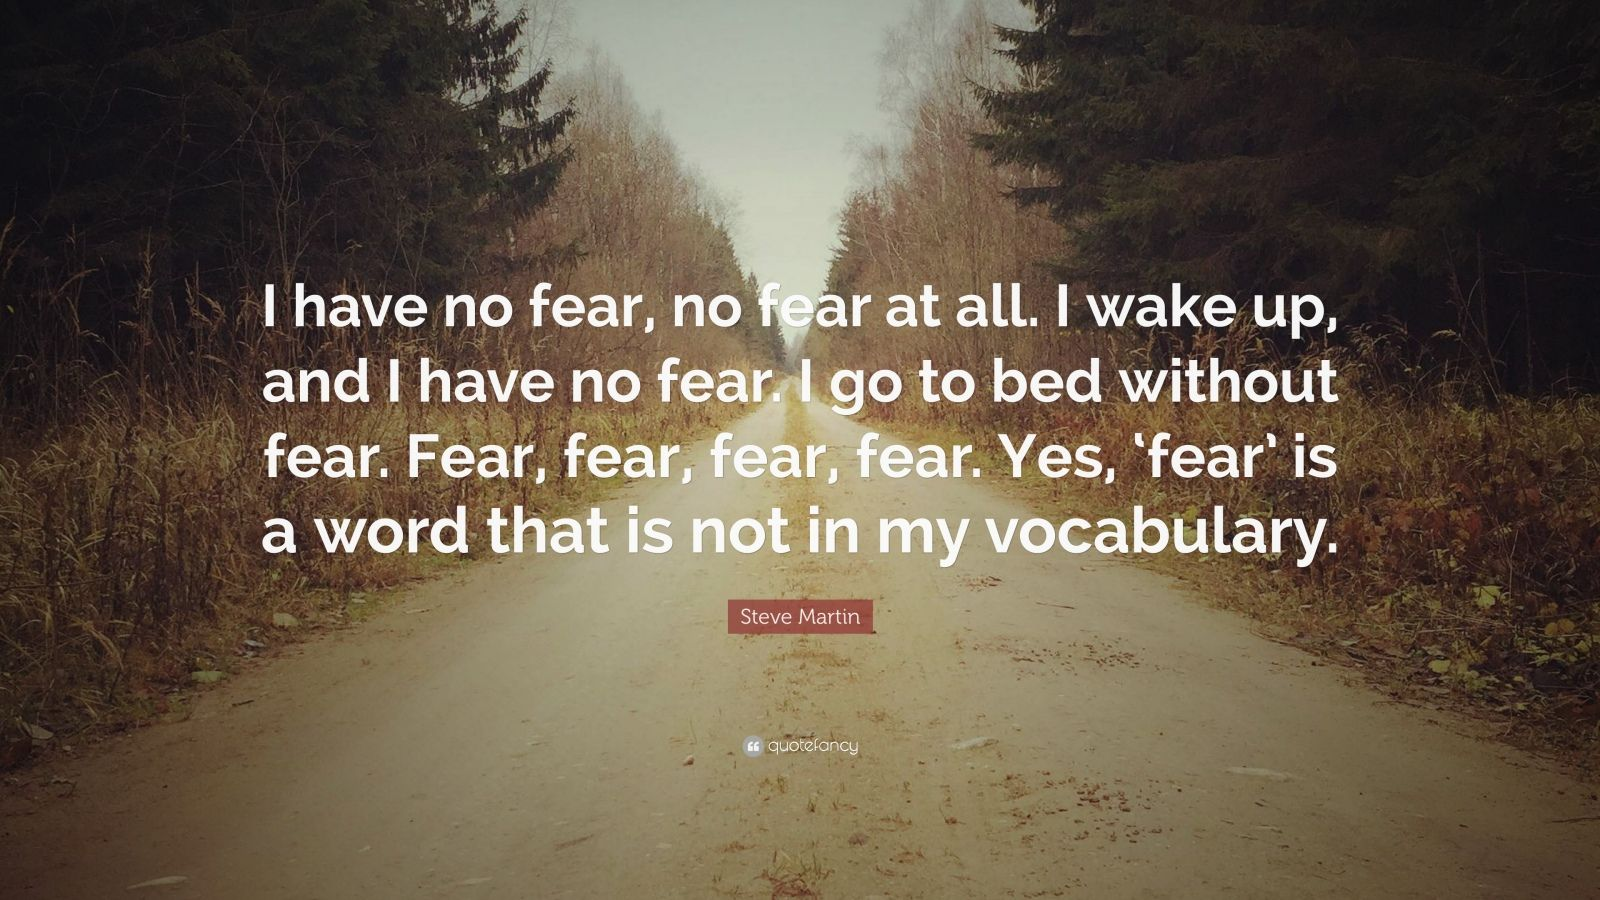 "Steve Martin Quote: ""I have no fear, no fear at all. I wake up, and I have no fear. I go to bed without fear. Fear, fear, fear, fear. Yes, 'fear' is a word that is not in my vocabulary."""